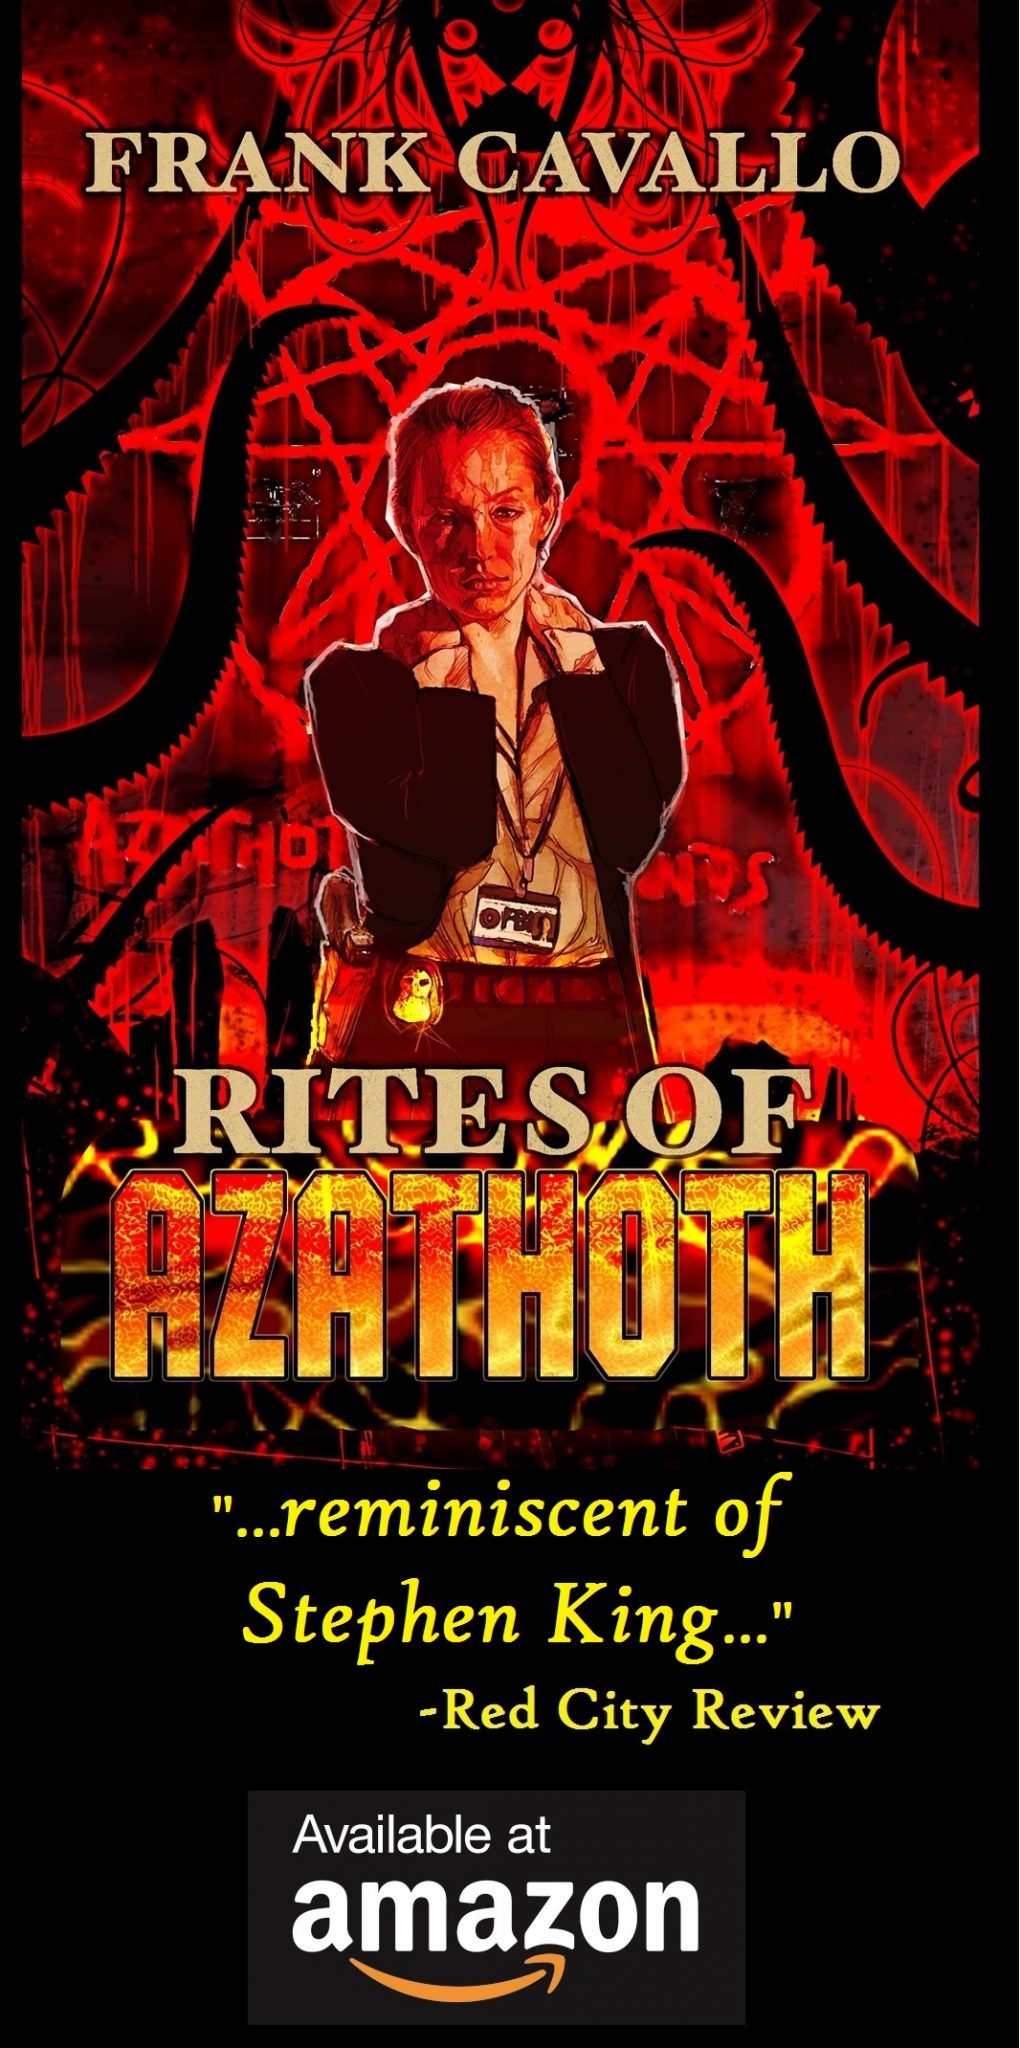 'Rites of Azathoth' by Frank Cavallo – Book Coming Soon